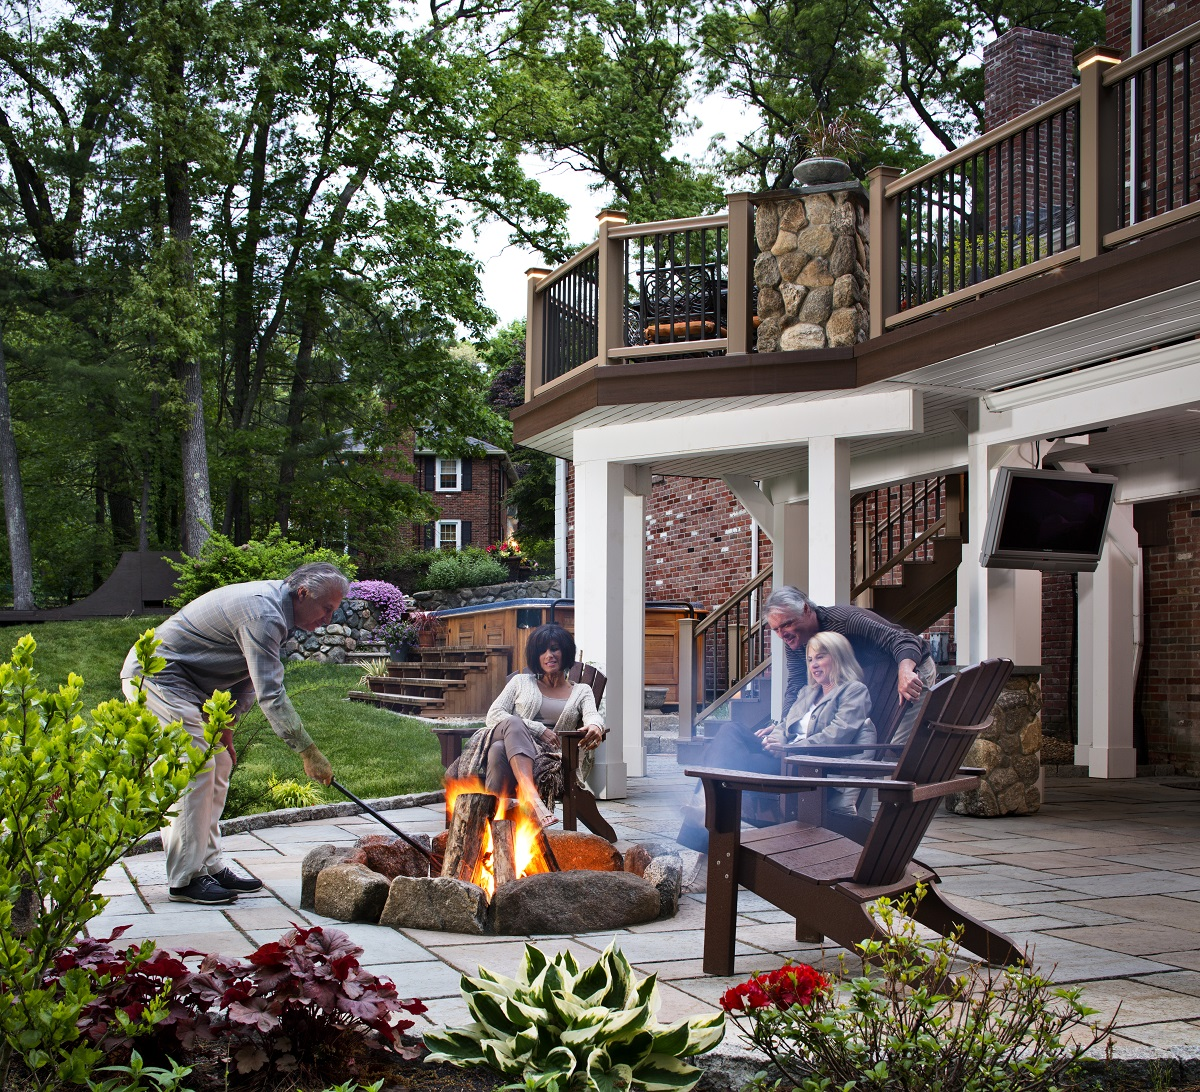 Archadeck-custom-outdoor-living-combination-space-design